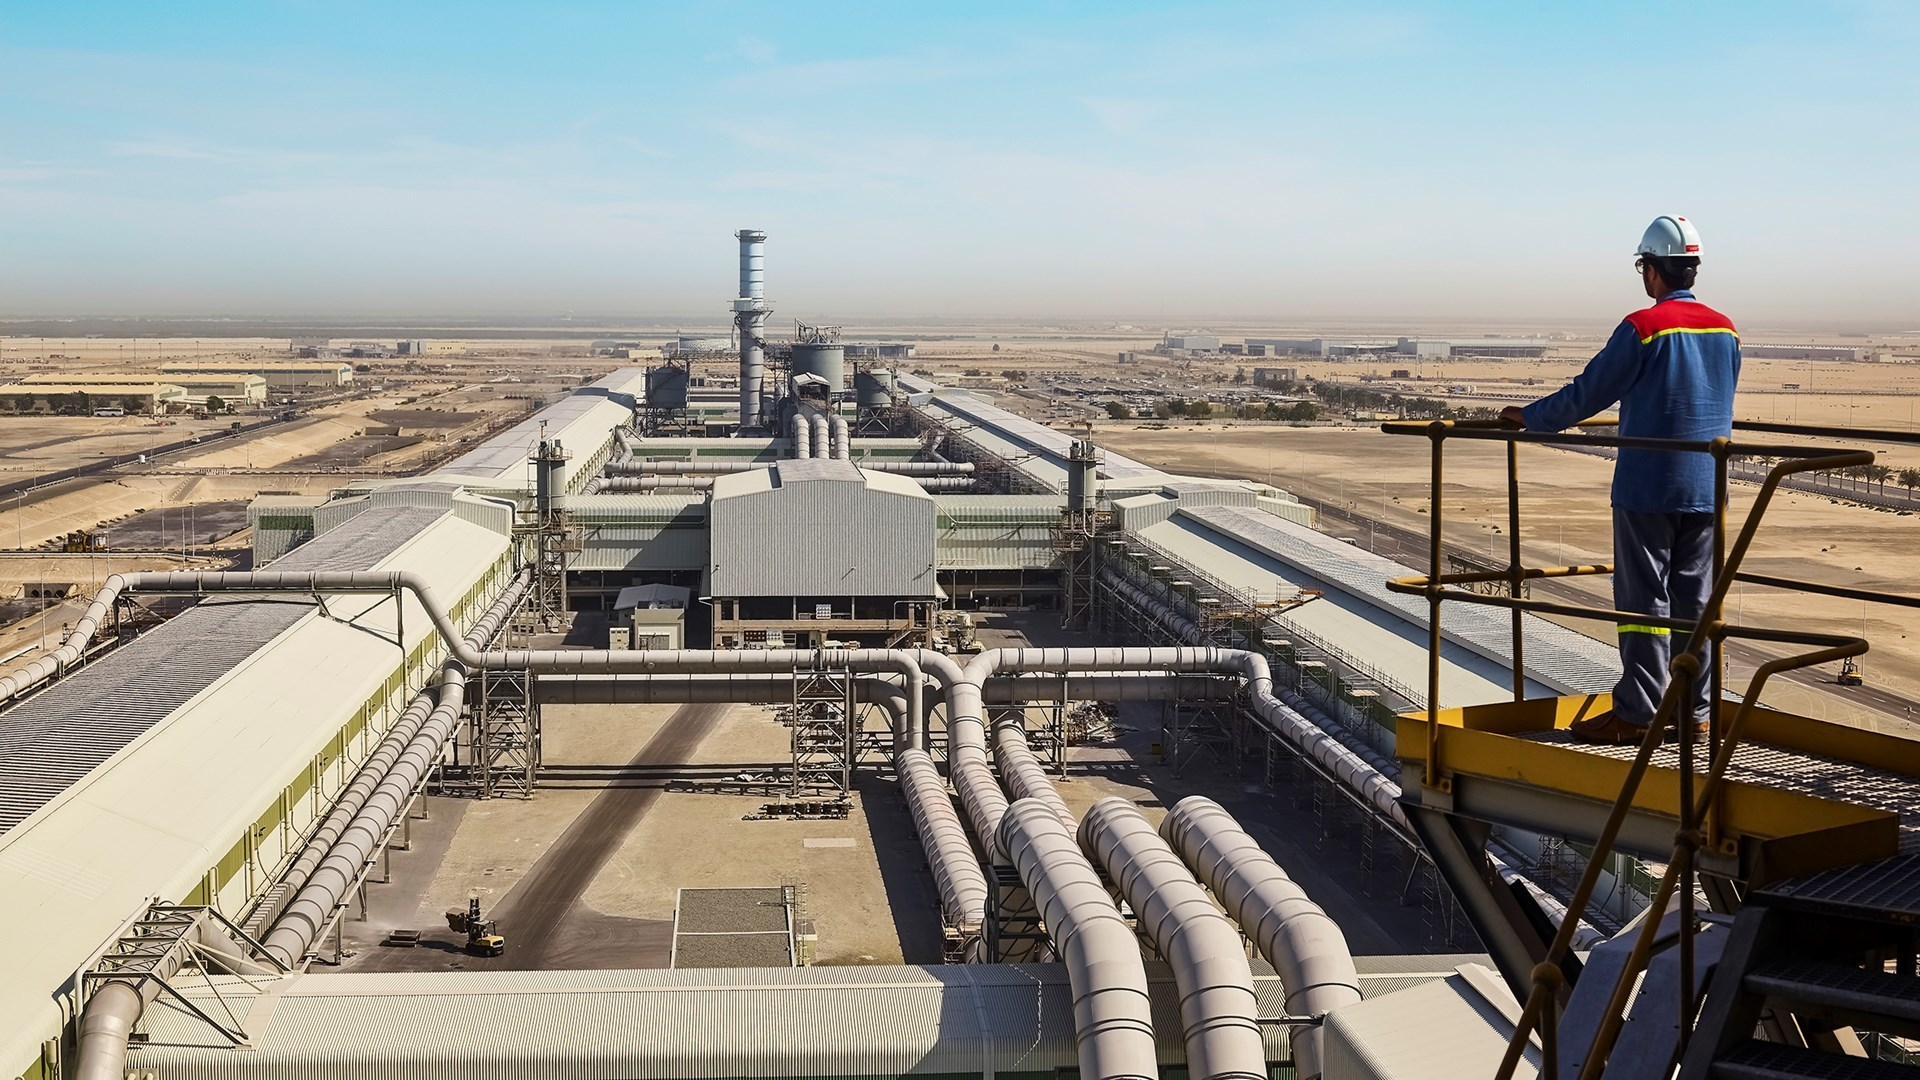 Sustainability in the Aluminum Industry in the UAE